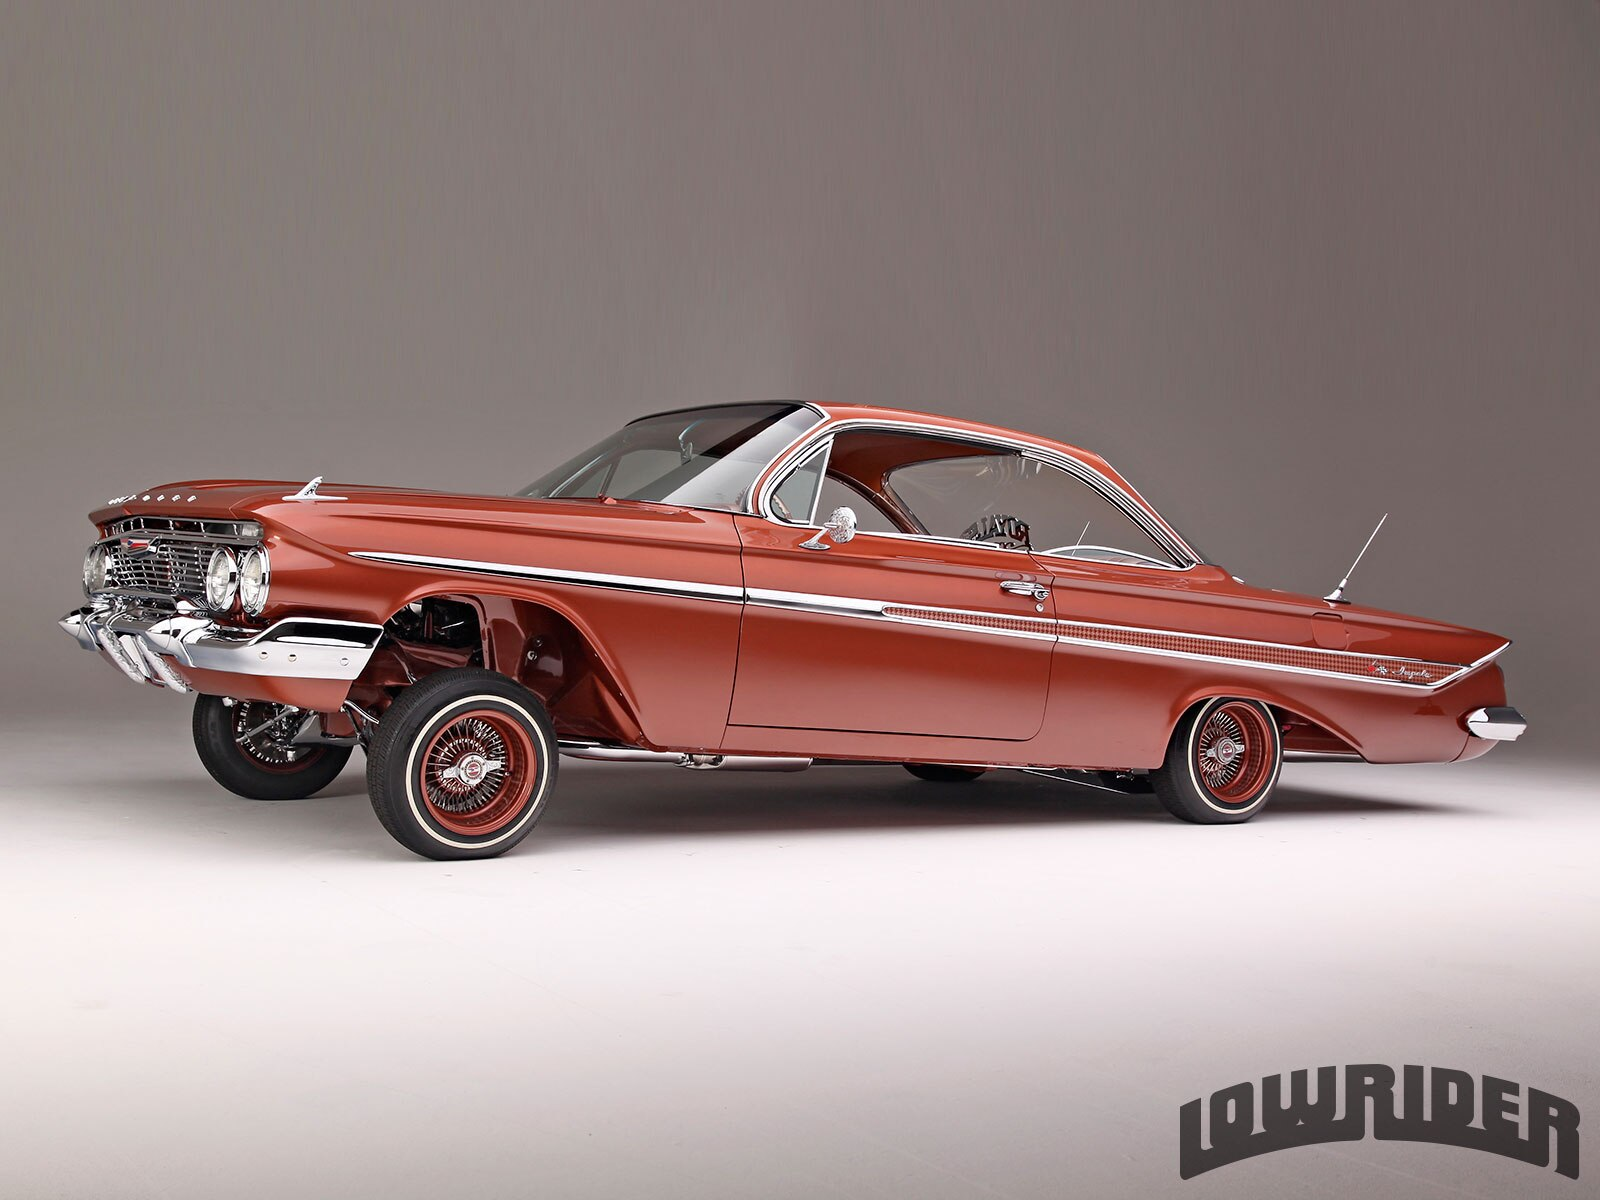 1961-chevrolet-impala-front-left-side-view-032